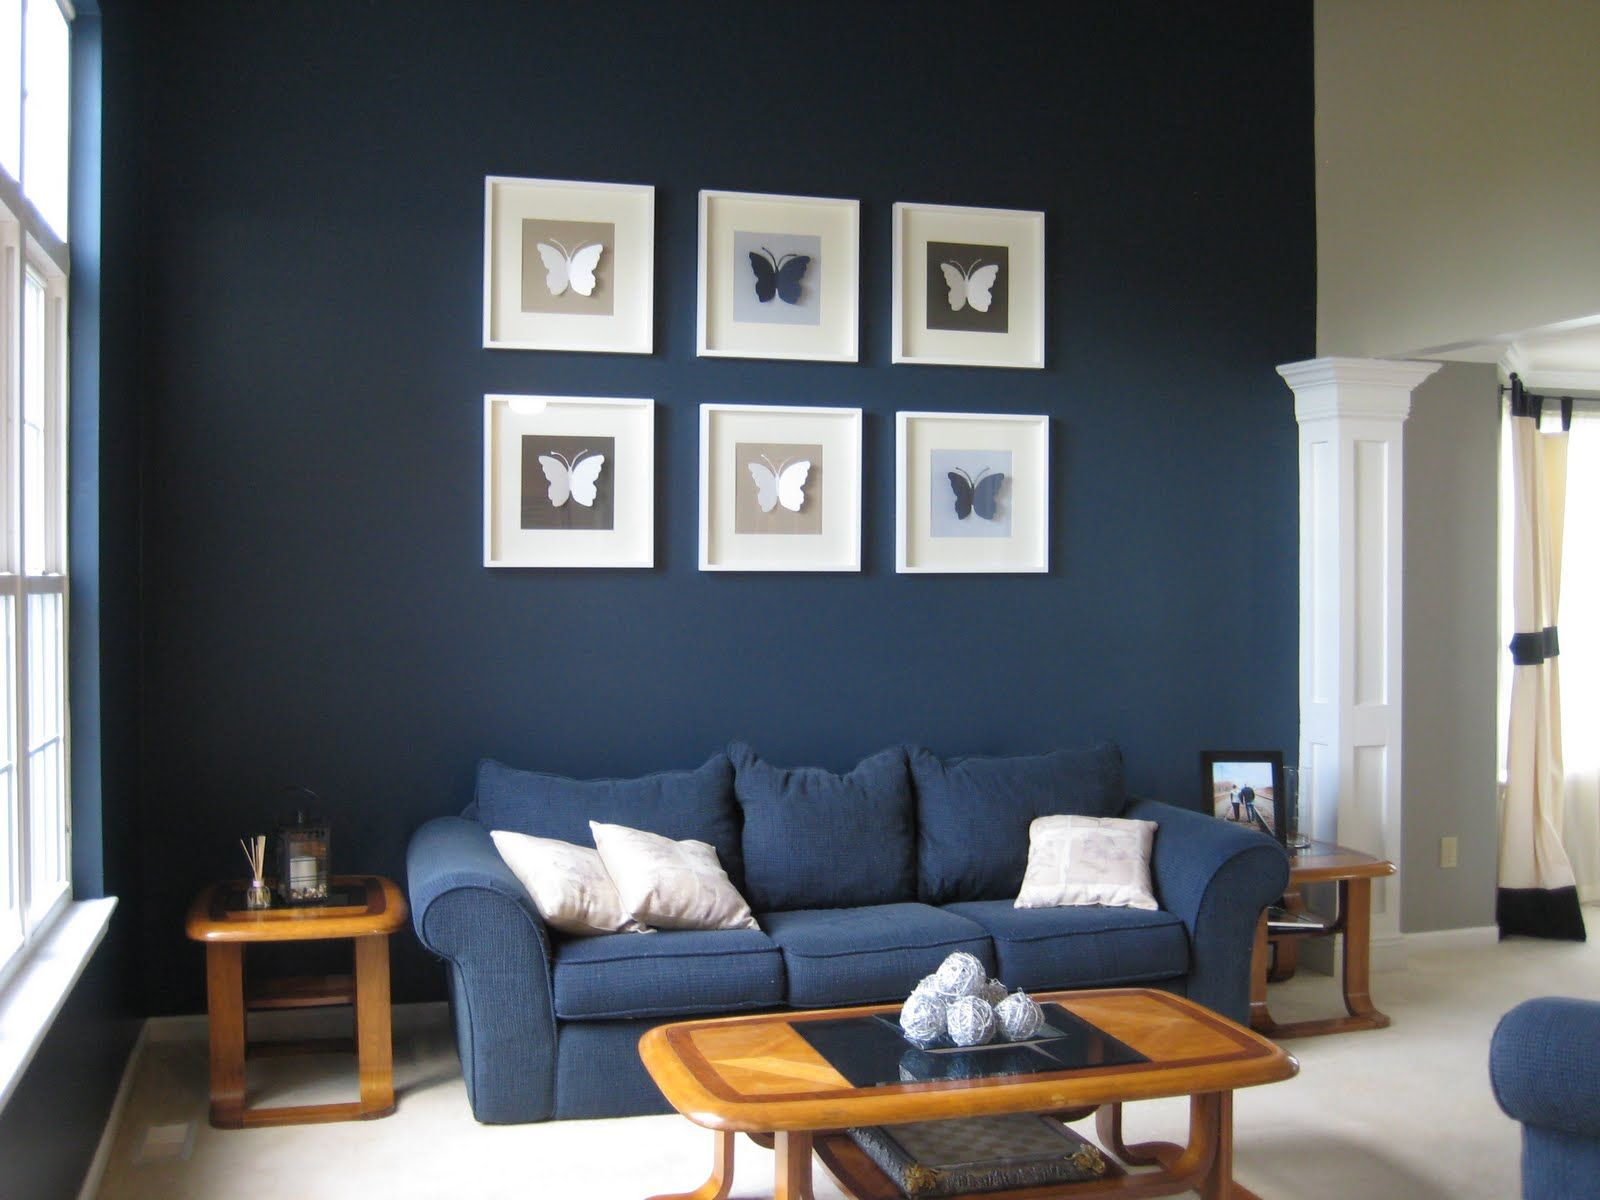 Pretty White Picture Frame With Wooden Material On Dark Blue Painted Wall Together Black Butterfly Image And Also Fabric Sofa Cushi